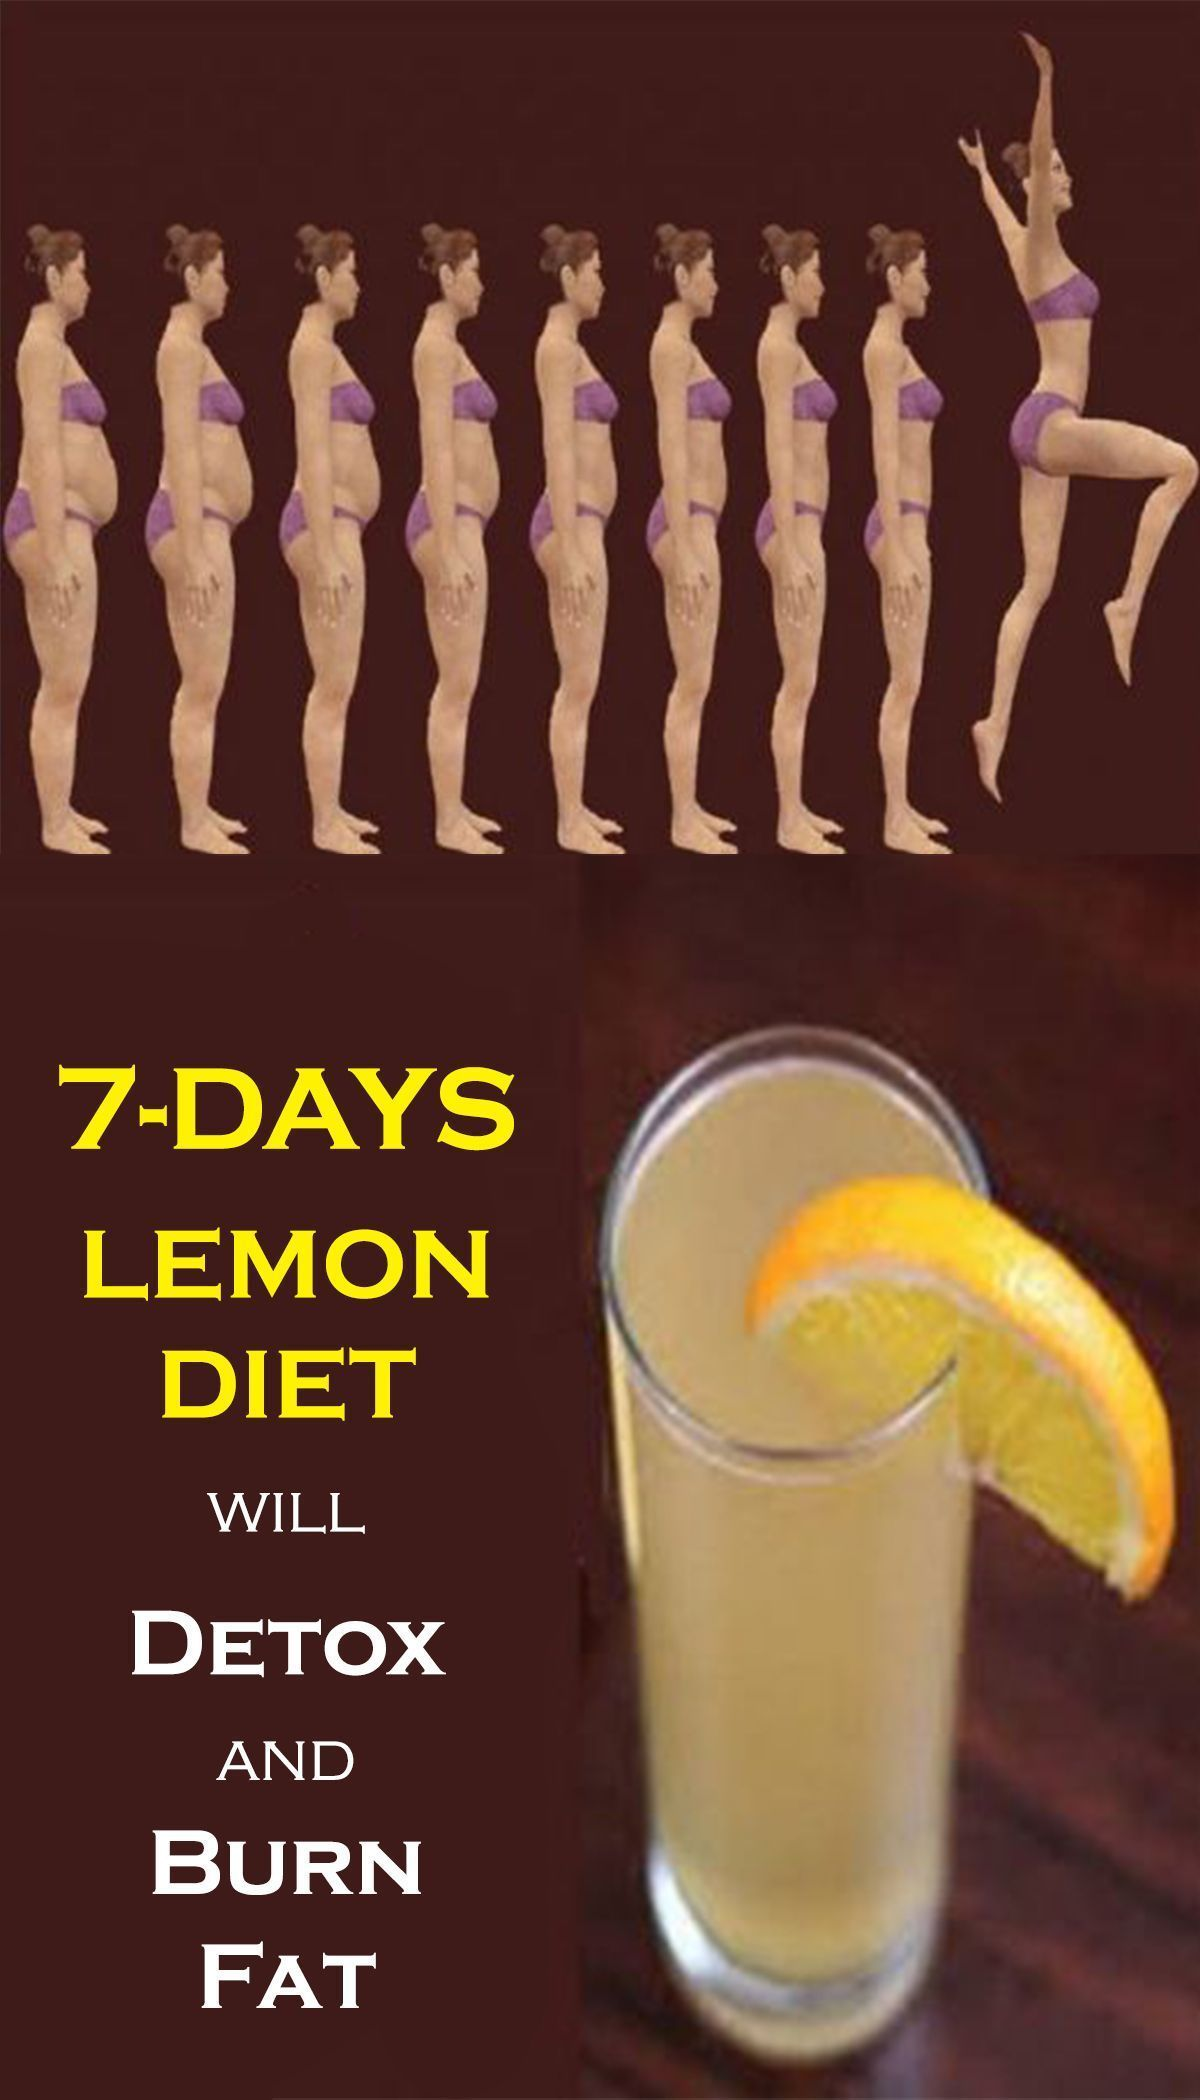 7 days lemon diet for lose weight fast